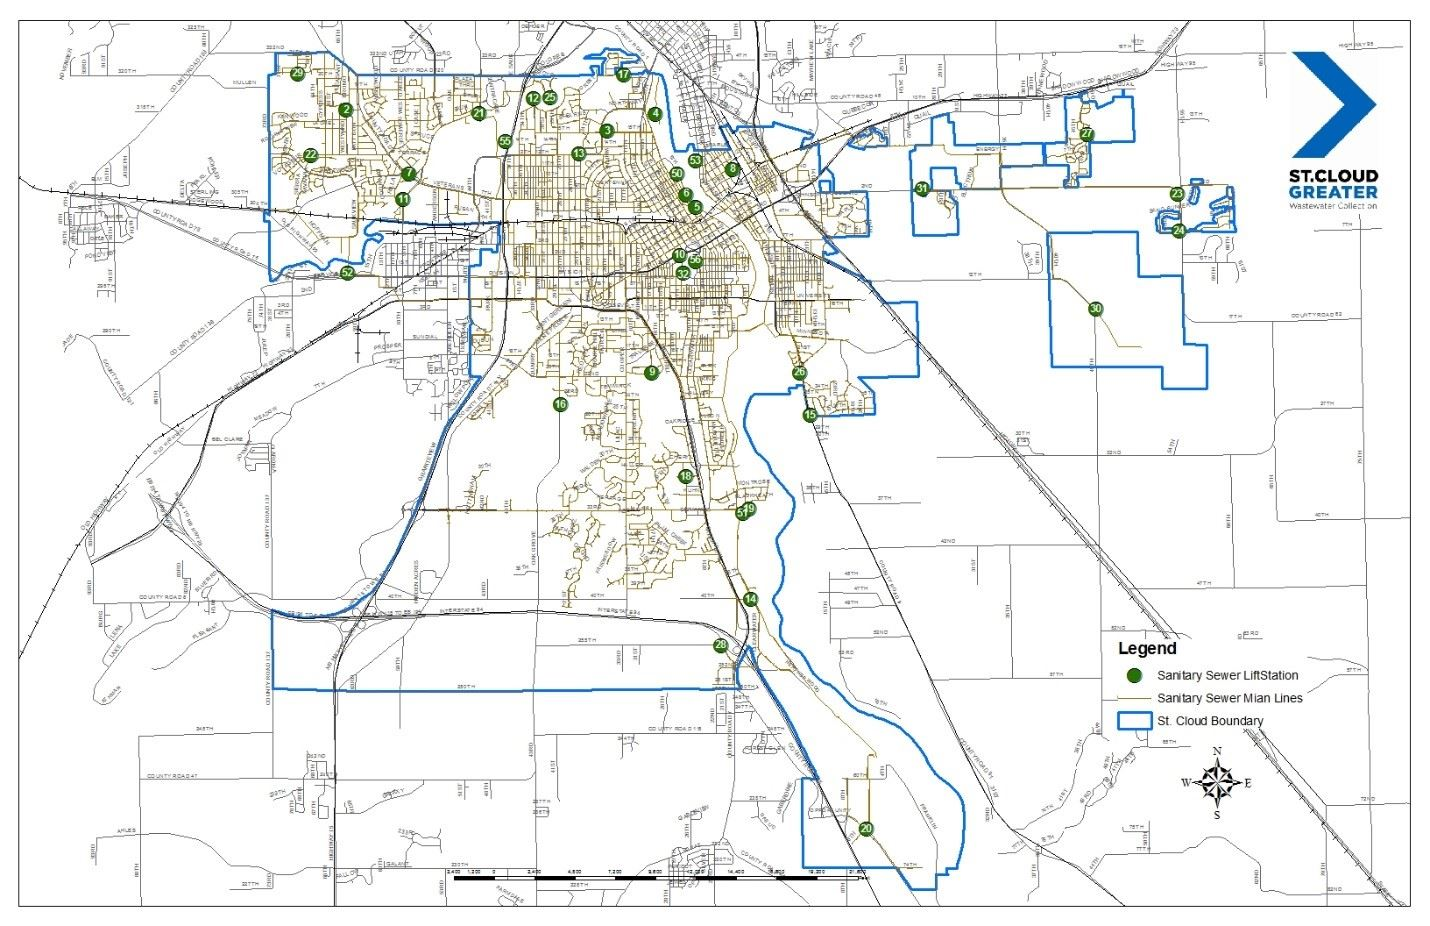 Map of the City of Saint Cloud's Sanitary Sewer System